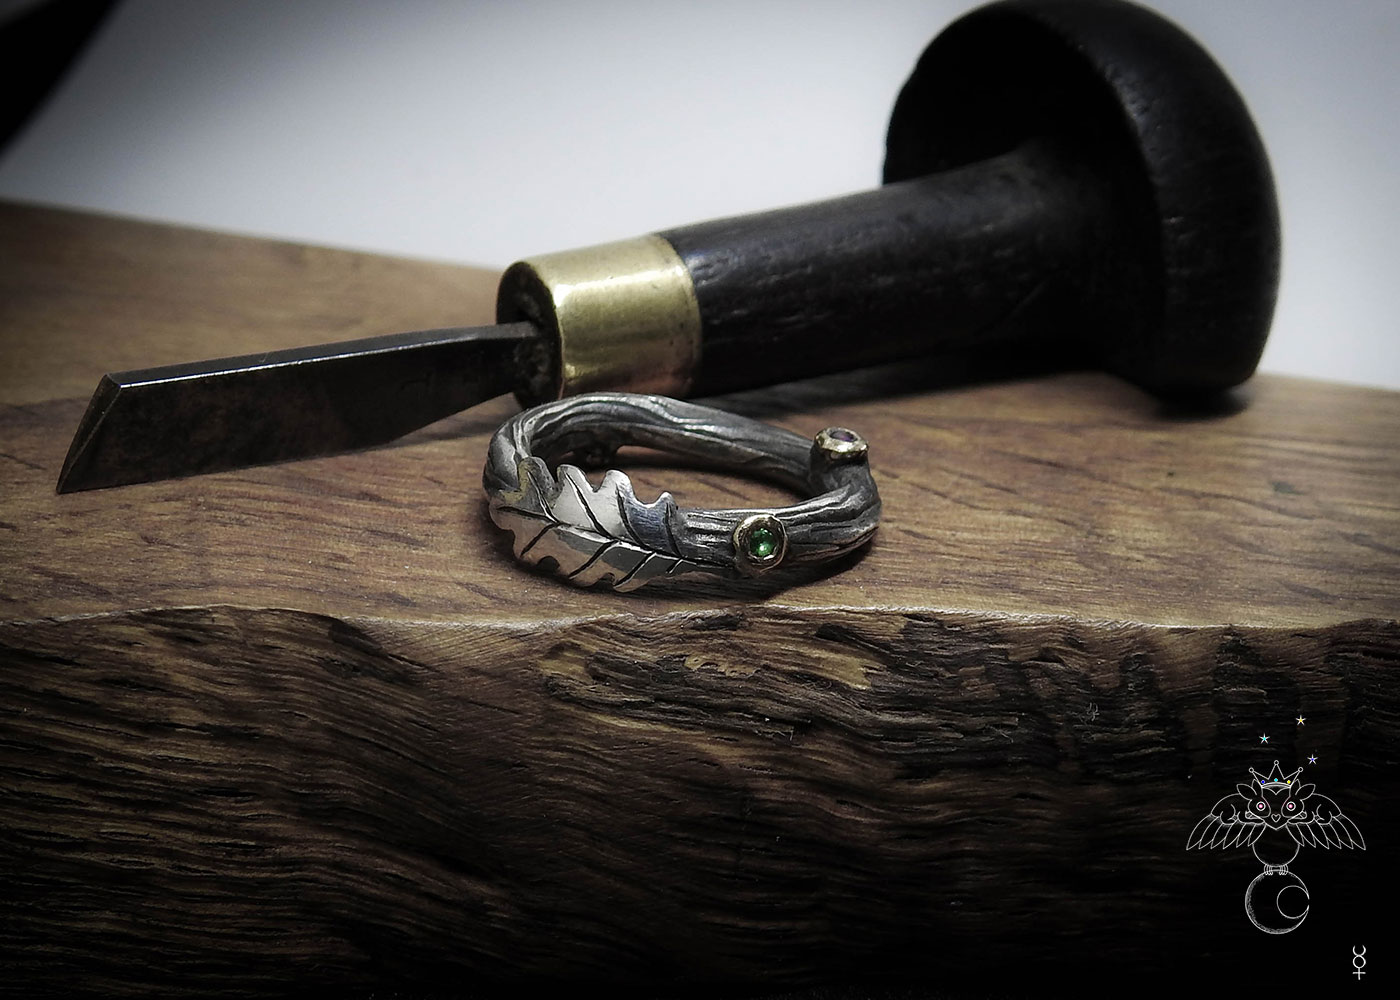 Oak tree ring - Recycled silver coins and fork